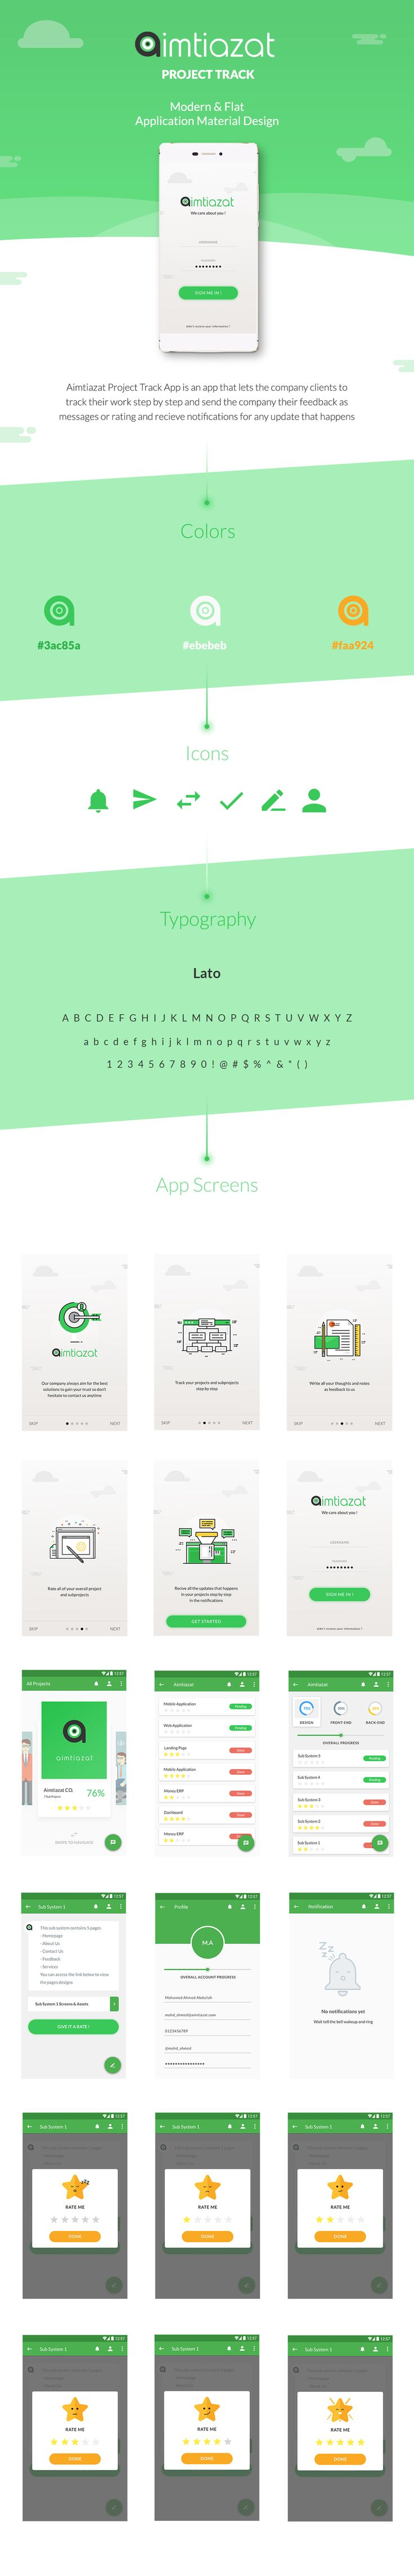 """Check out my @Behance project: """"Aimtiazat Project Track - Mobile App"""" https://www.behance.net/gallery/50632827/Aimtiazat-Project-Track-Mobile-App"""